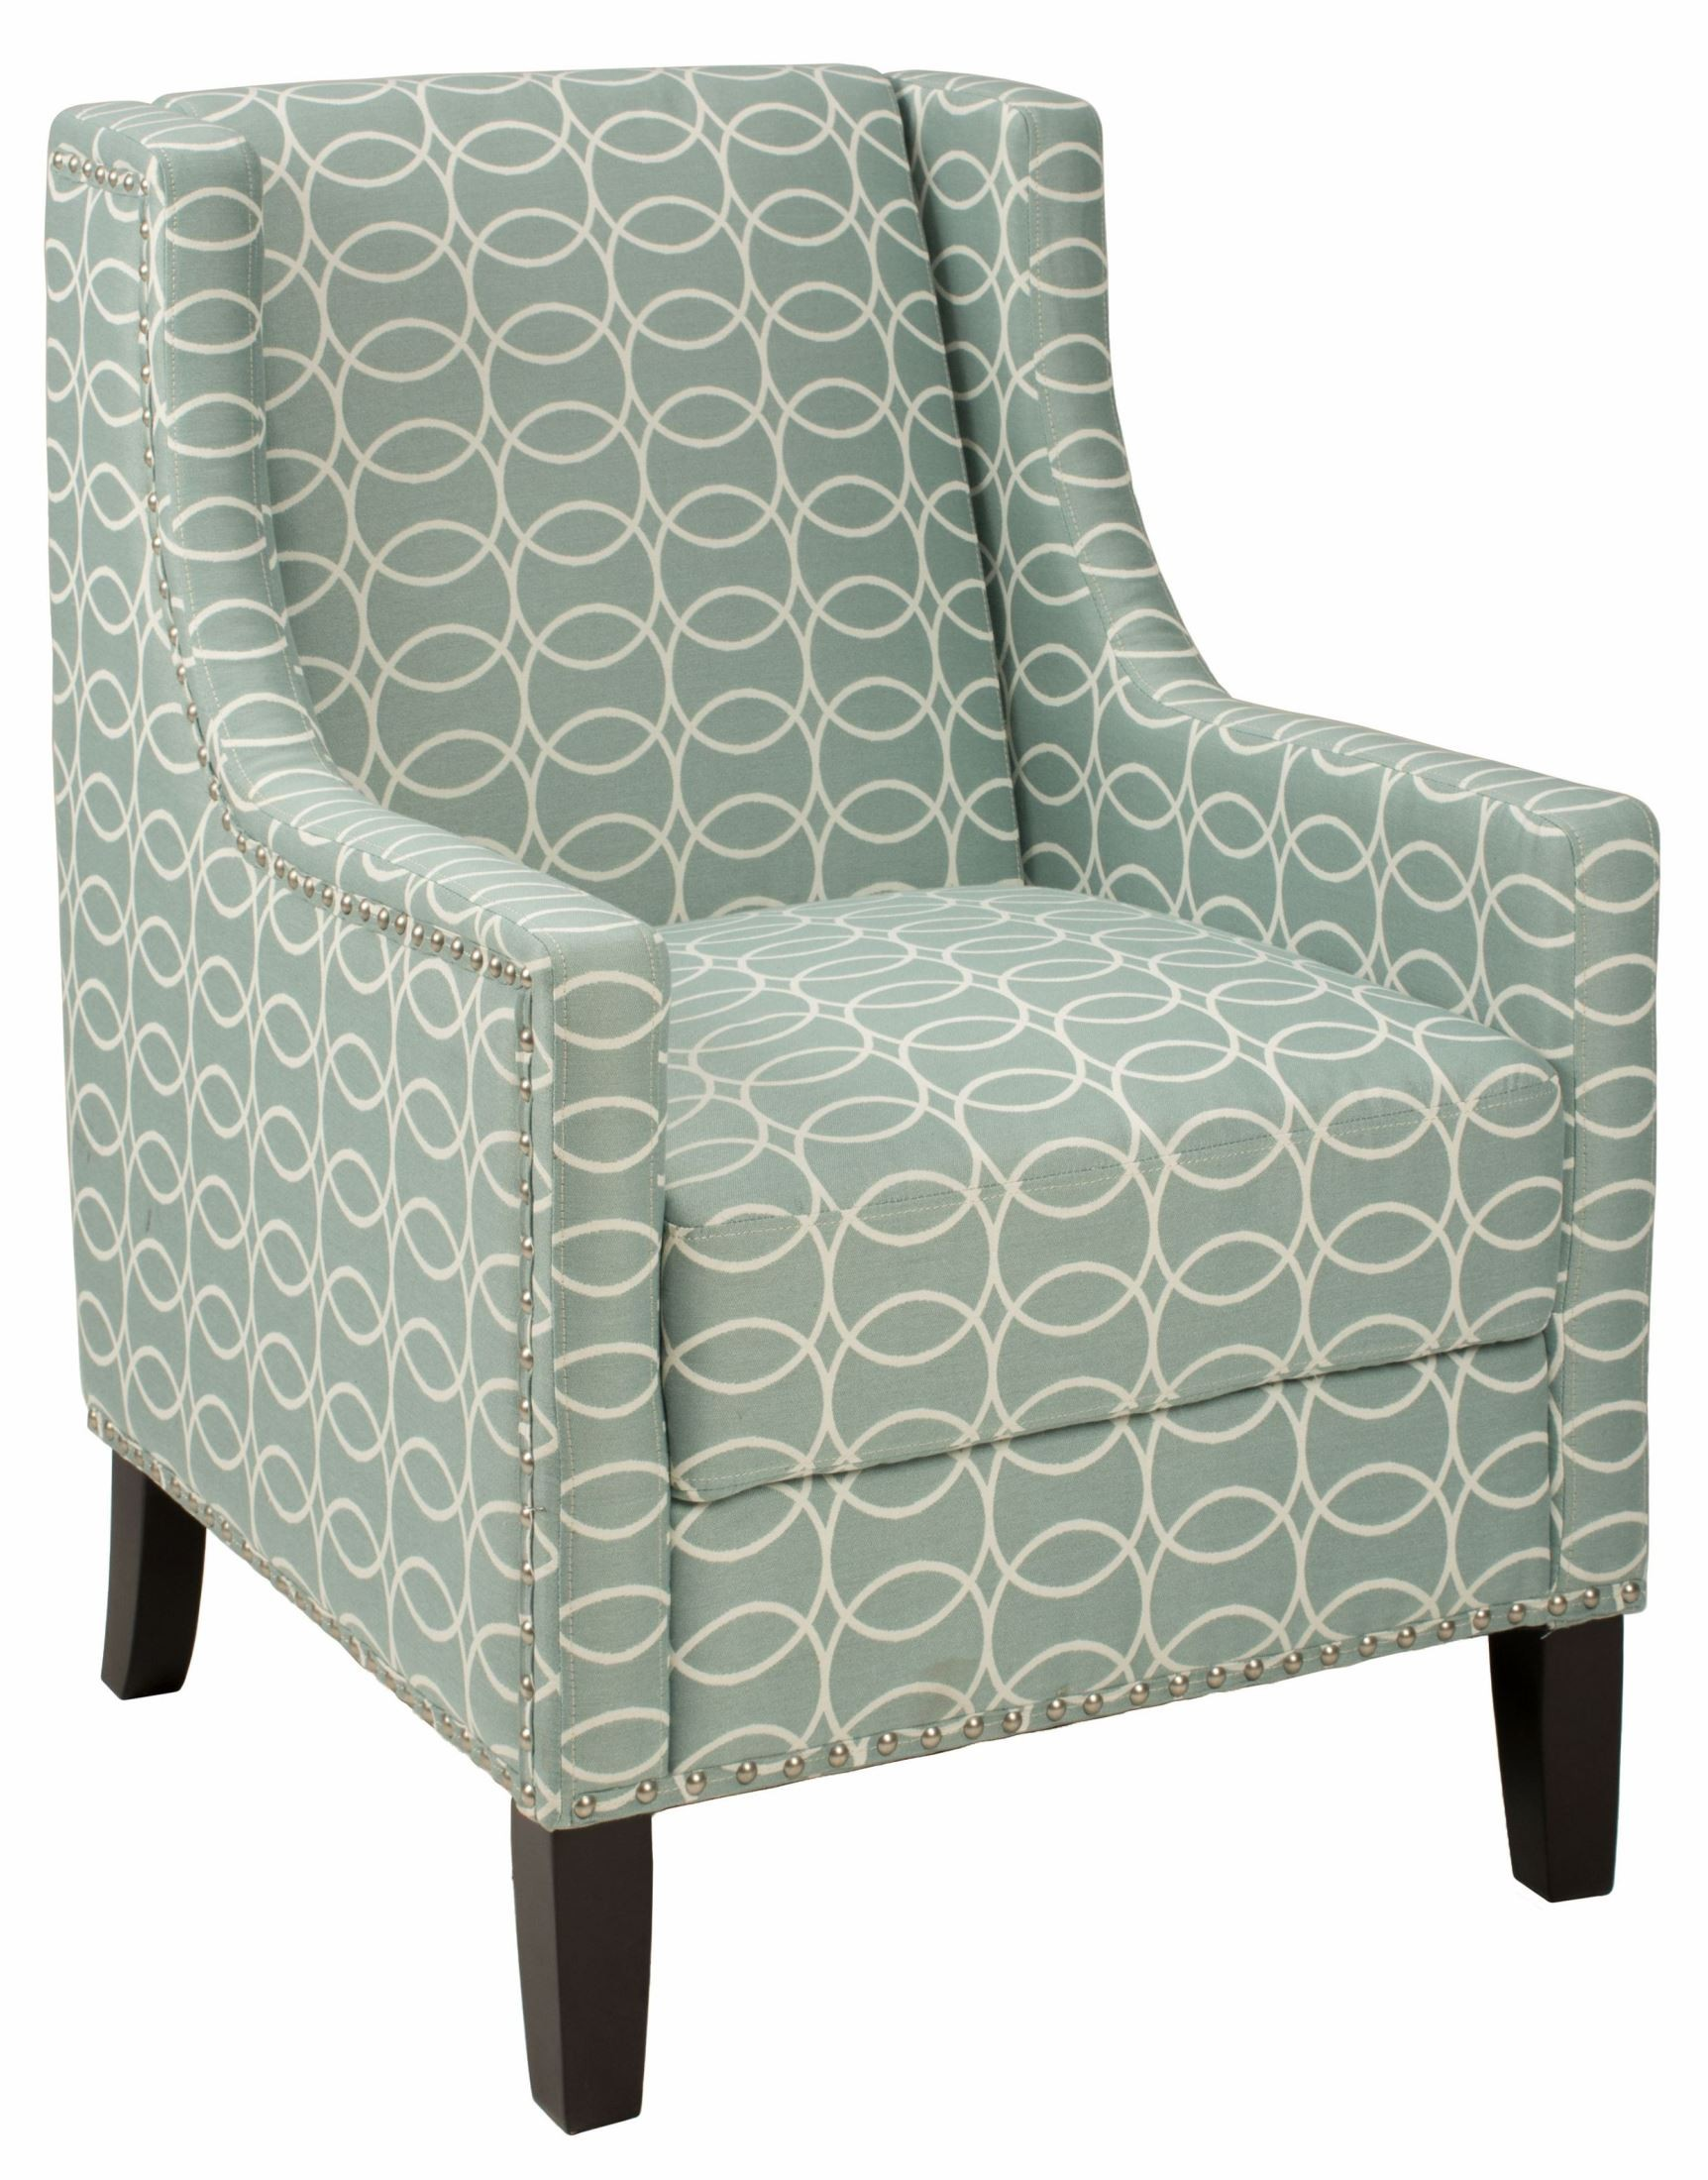 Light Gray Accent Chairs Josie Light Blue And Grey Accent Chair Josie Ch Spa Jofran